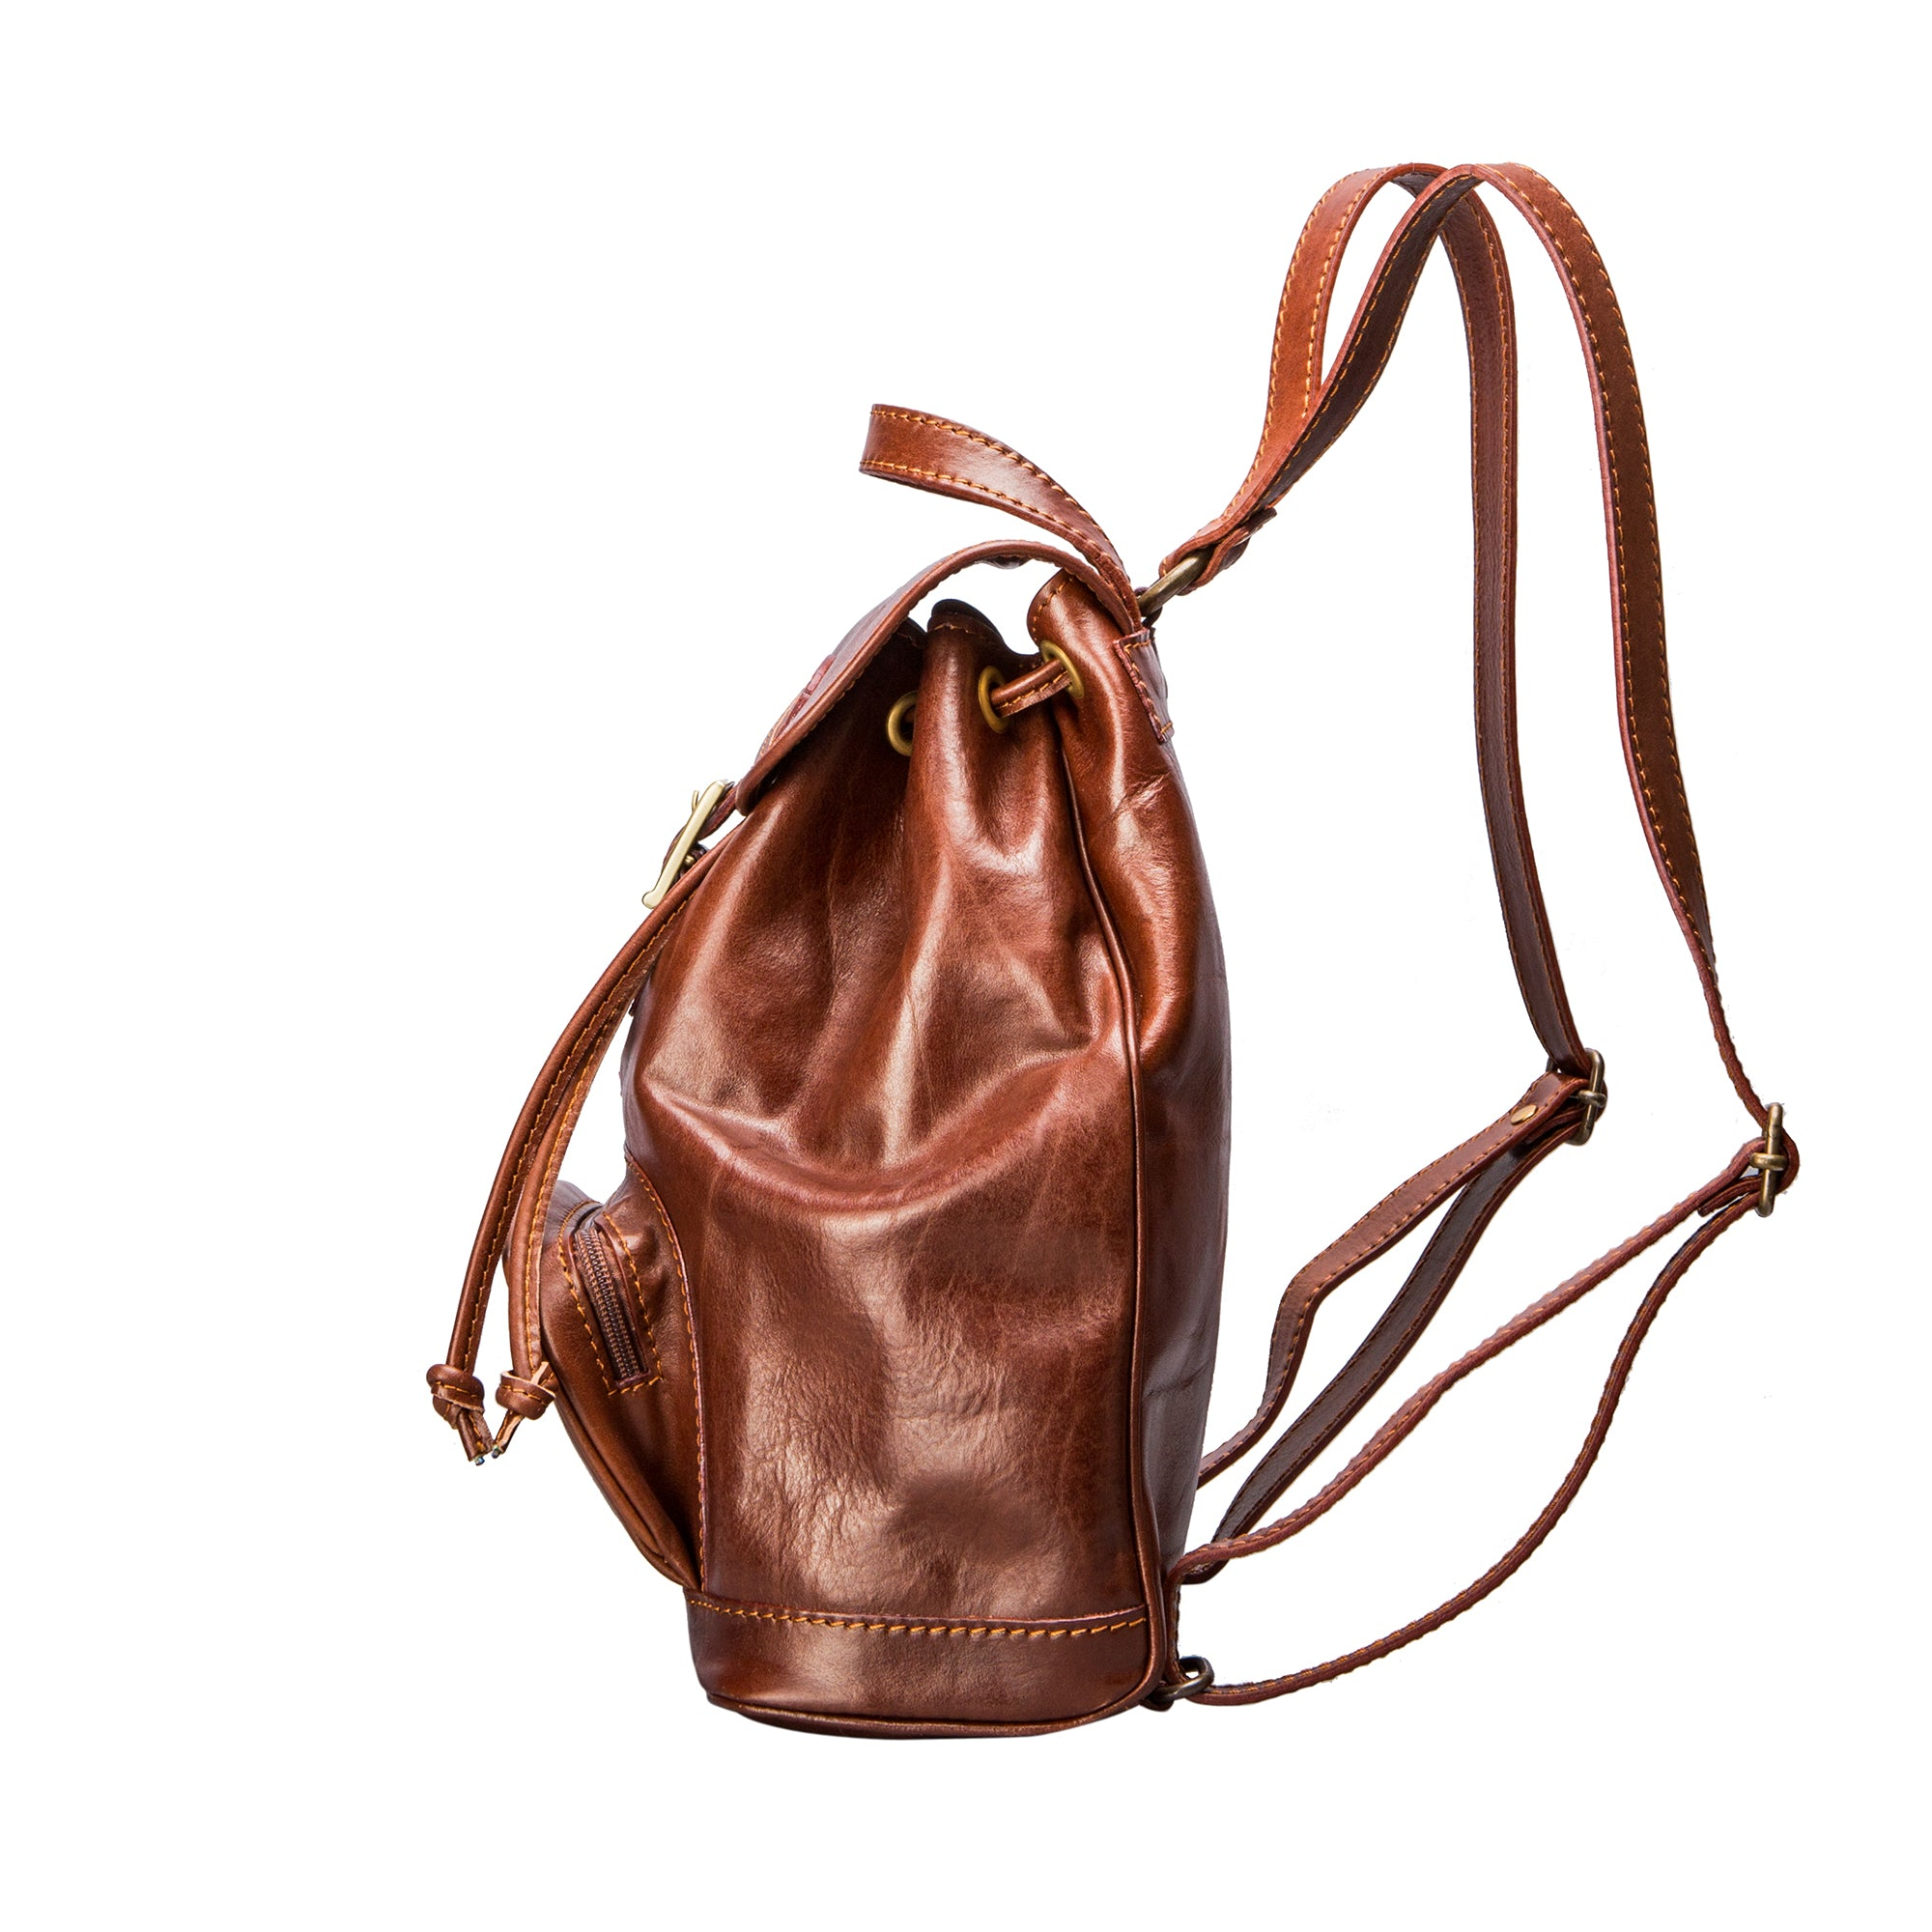 Image 3 of the 'Sparano' Chestnut Veg-Tanned Leather Backpack